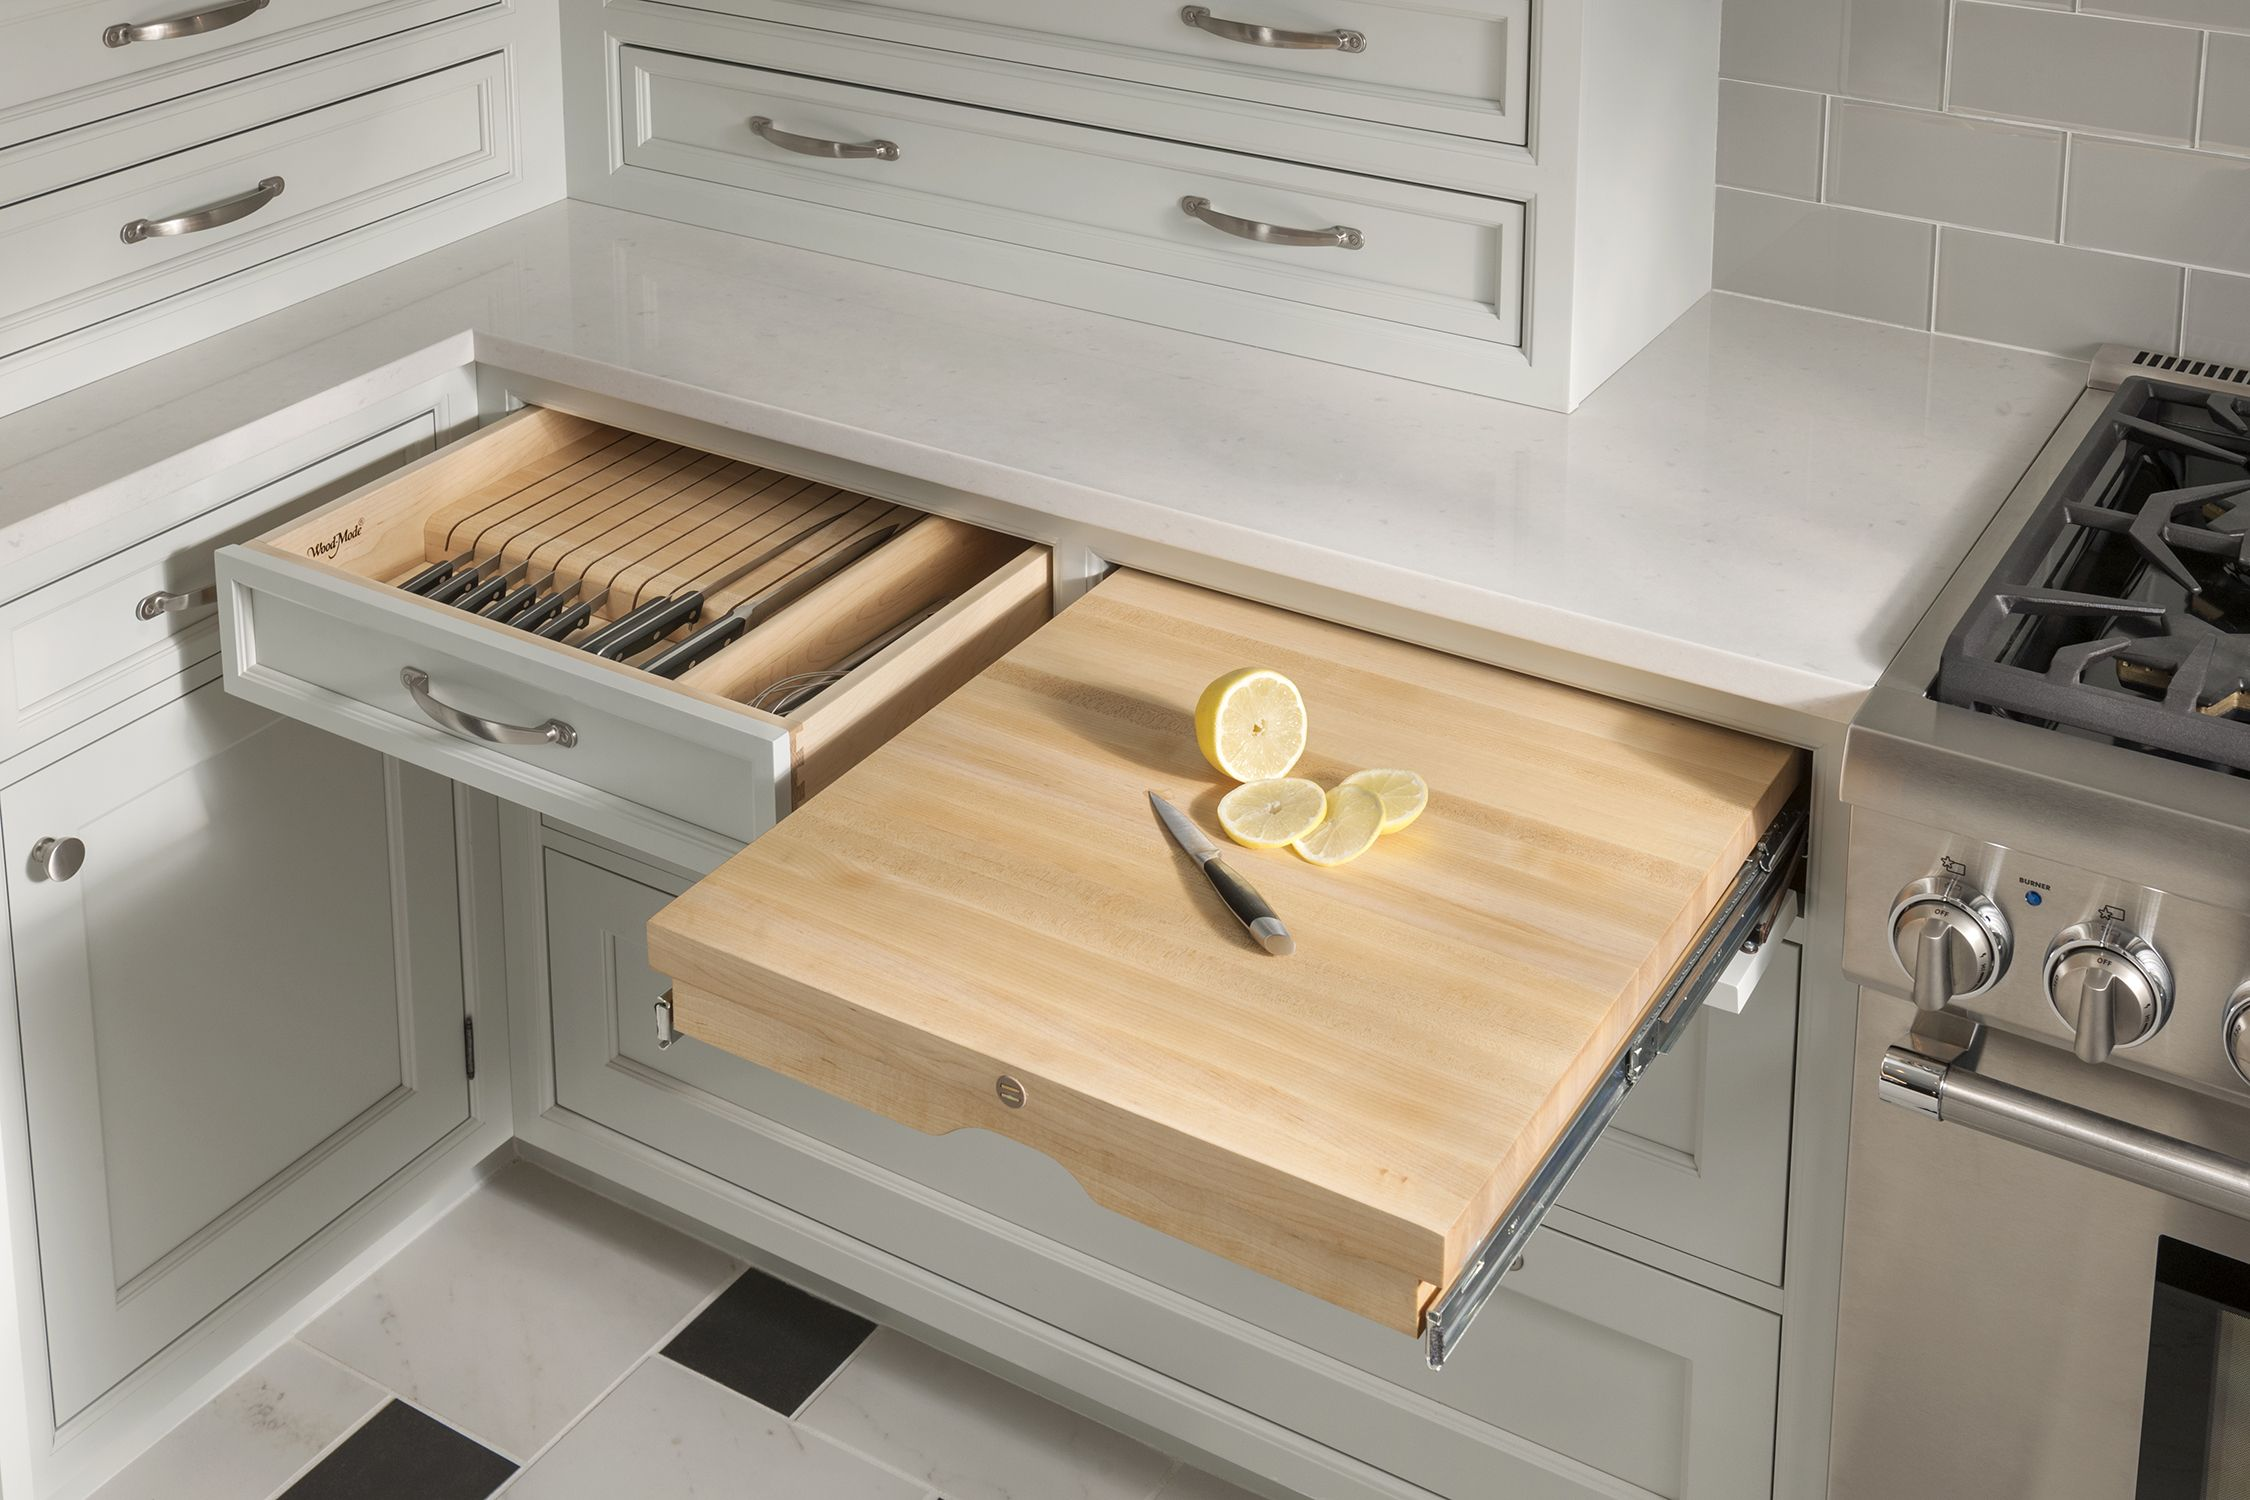 Kitchen Storage | kitchen | Pinterest | Storage, Kitchens and Wood mode